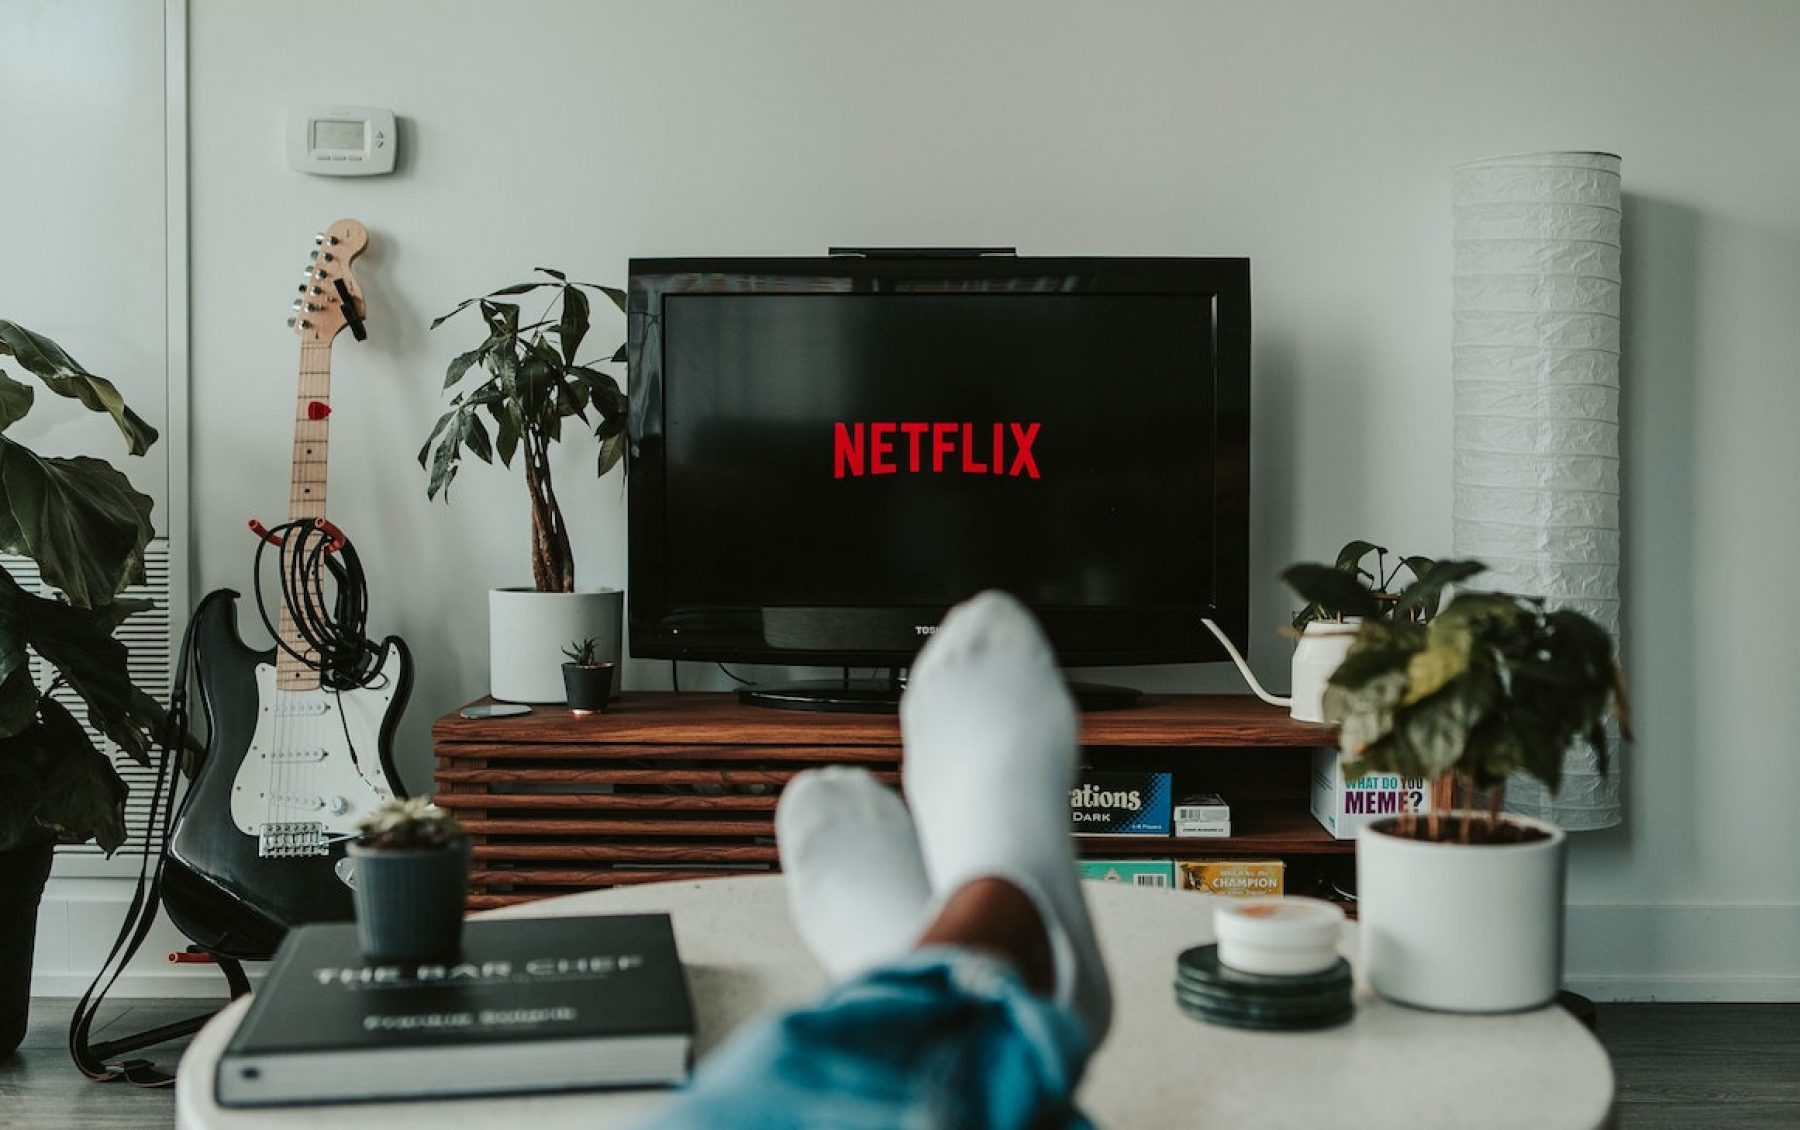 Image for What went right this week: 'net-zero' Netflix, hydrogen jets and more positive news